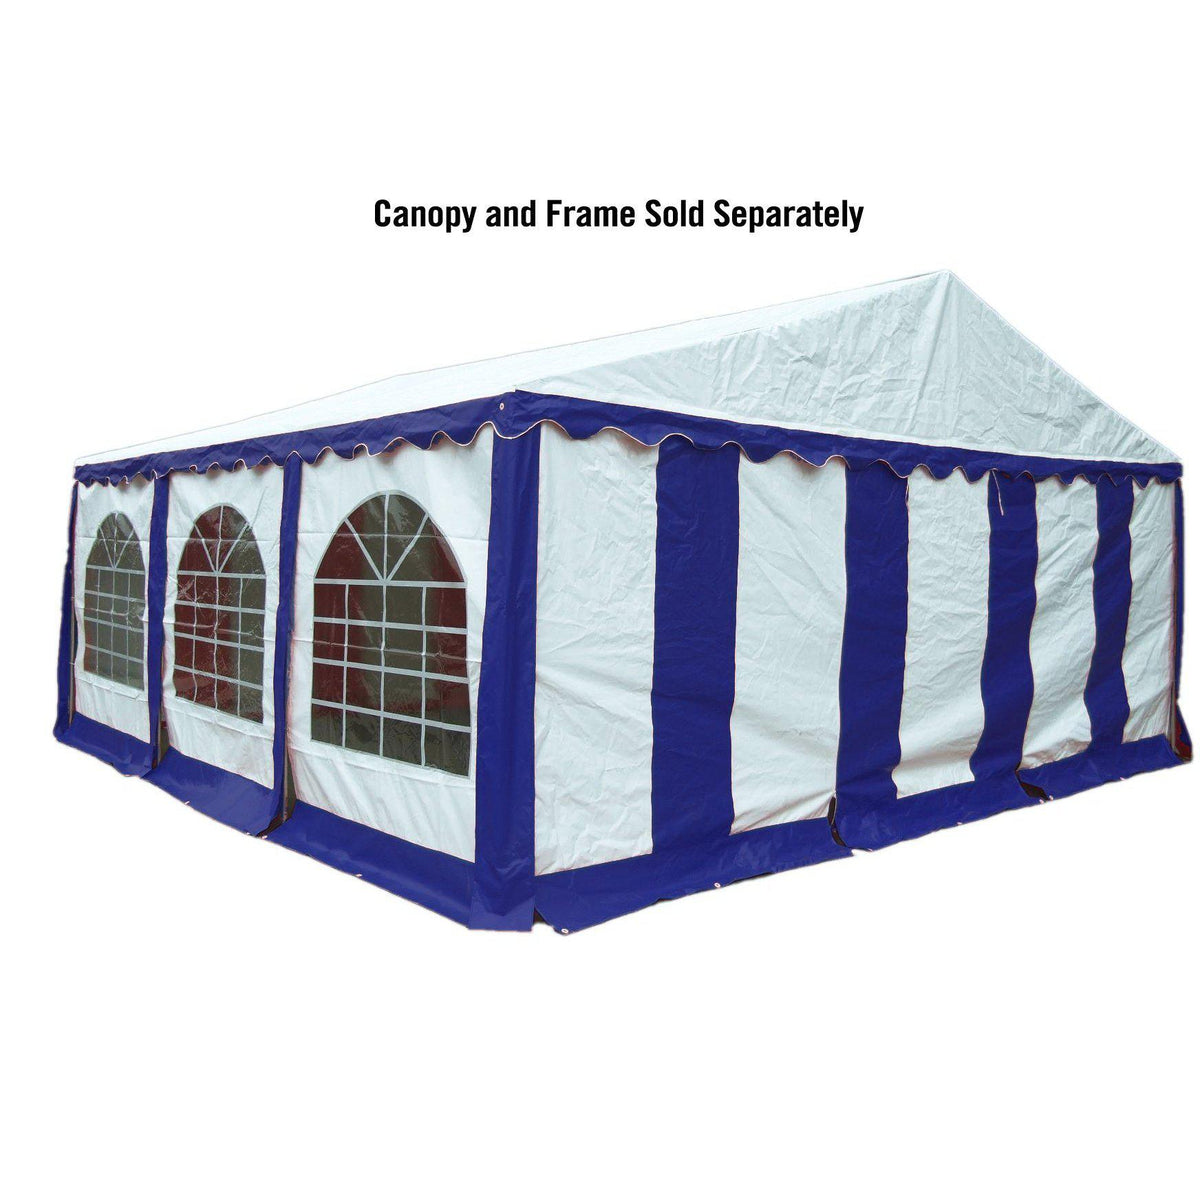 ShelterLogic Enclosure Kit with Windows, Blue/White, 20 x 20 ft. (Party Tent Cover and Frame Sold Separately)